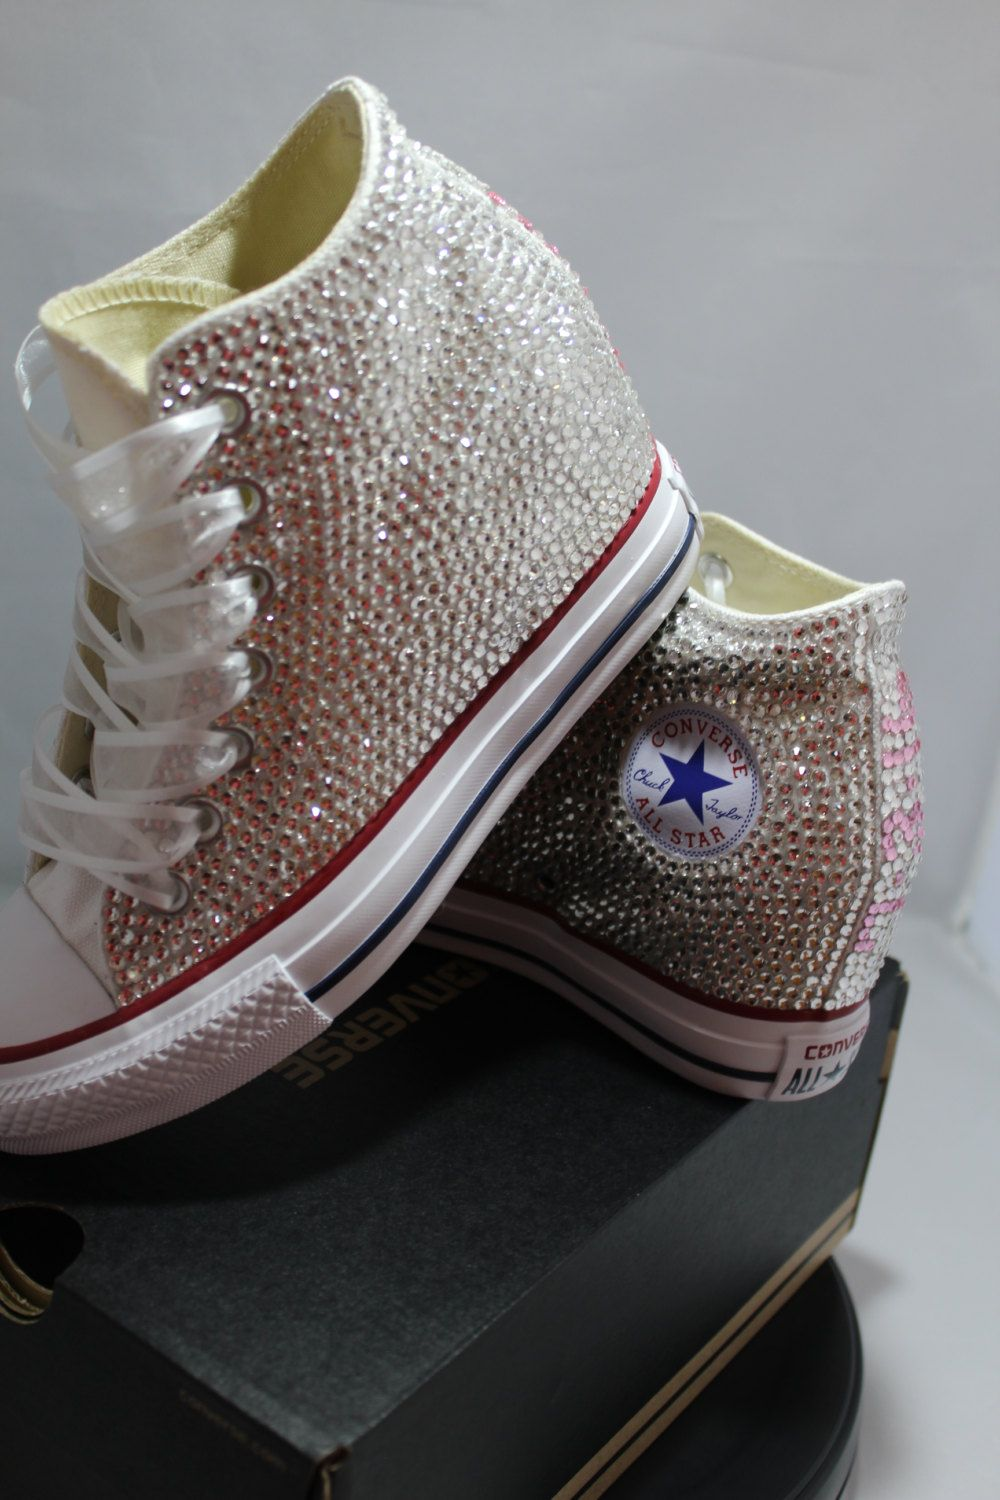 55a6039a5f1c Wedge Bridal Converse- Wedding Converse- Full Bling Custom Converse Sneakers-  Personalized Chuck Taylors- All Star Converse Sneakers by DivineUnlimited  on ...